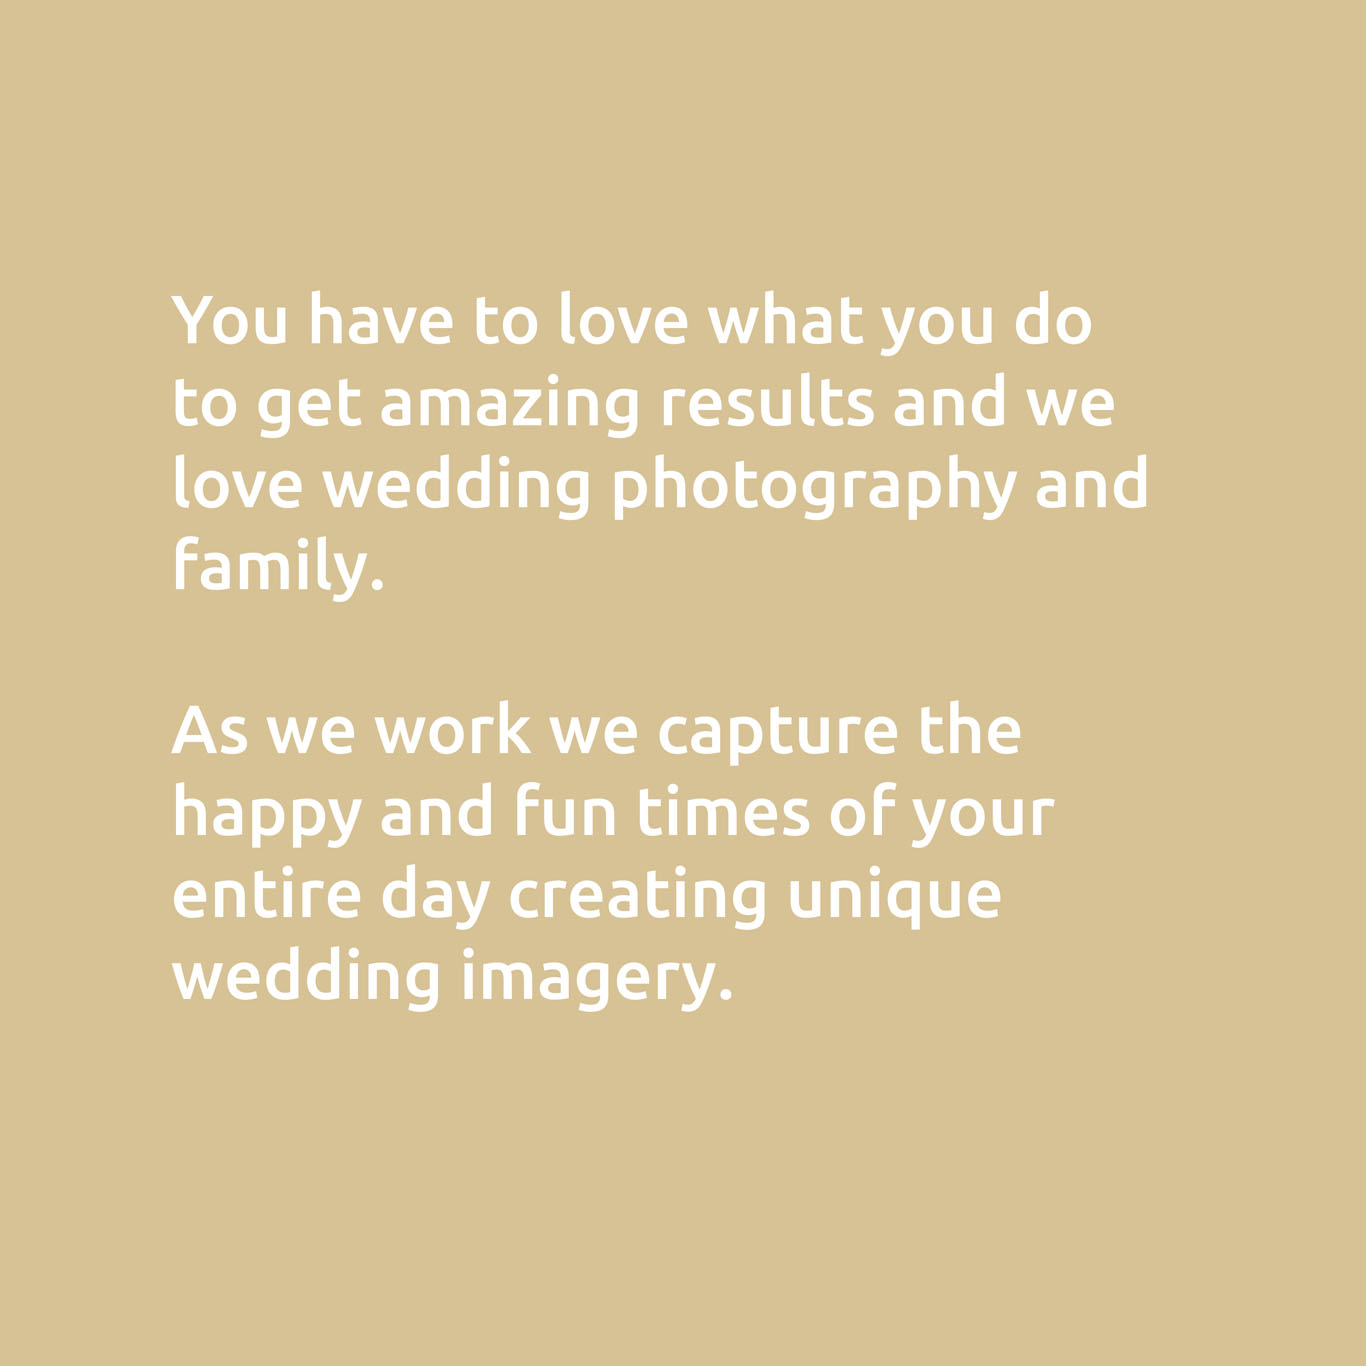 You have to love what you do to getamazing results and we love wedding photography and family.  As we work we capture the happy and fun times of your entire day creating unique wedding imagery.